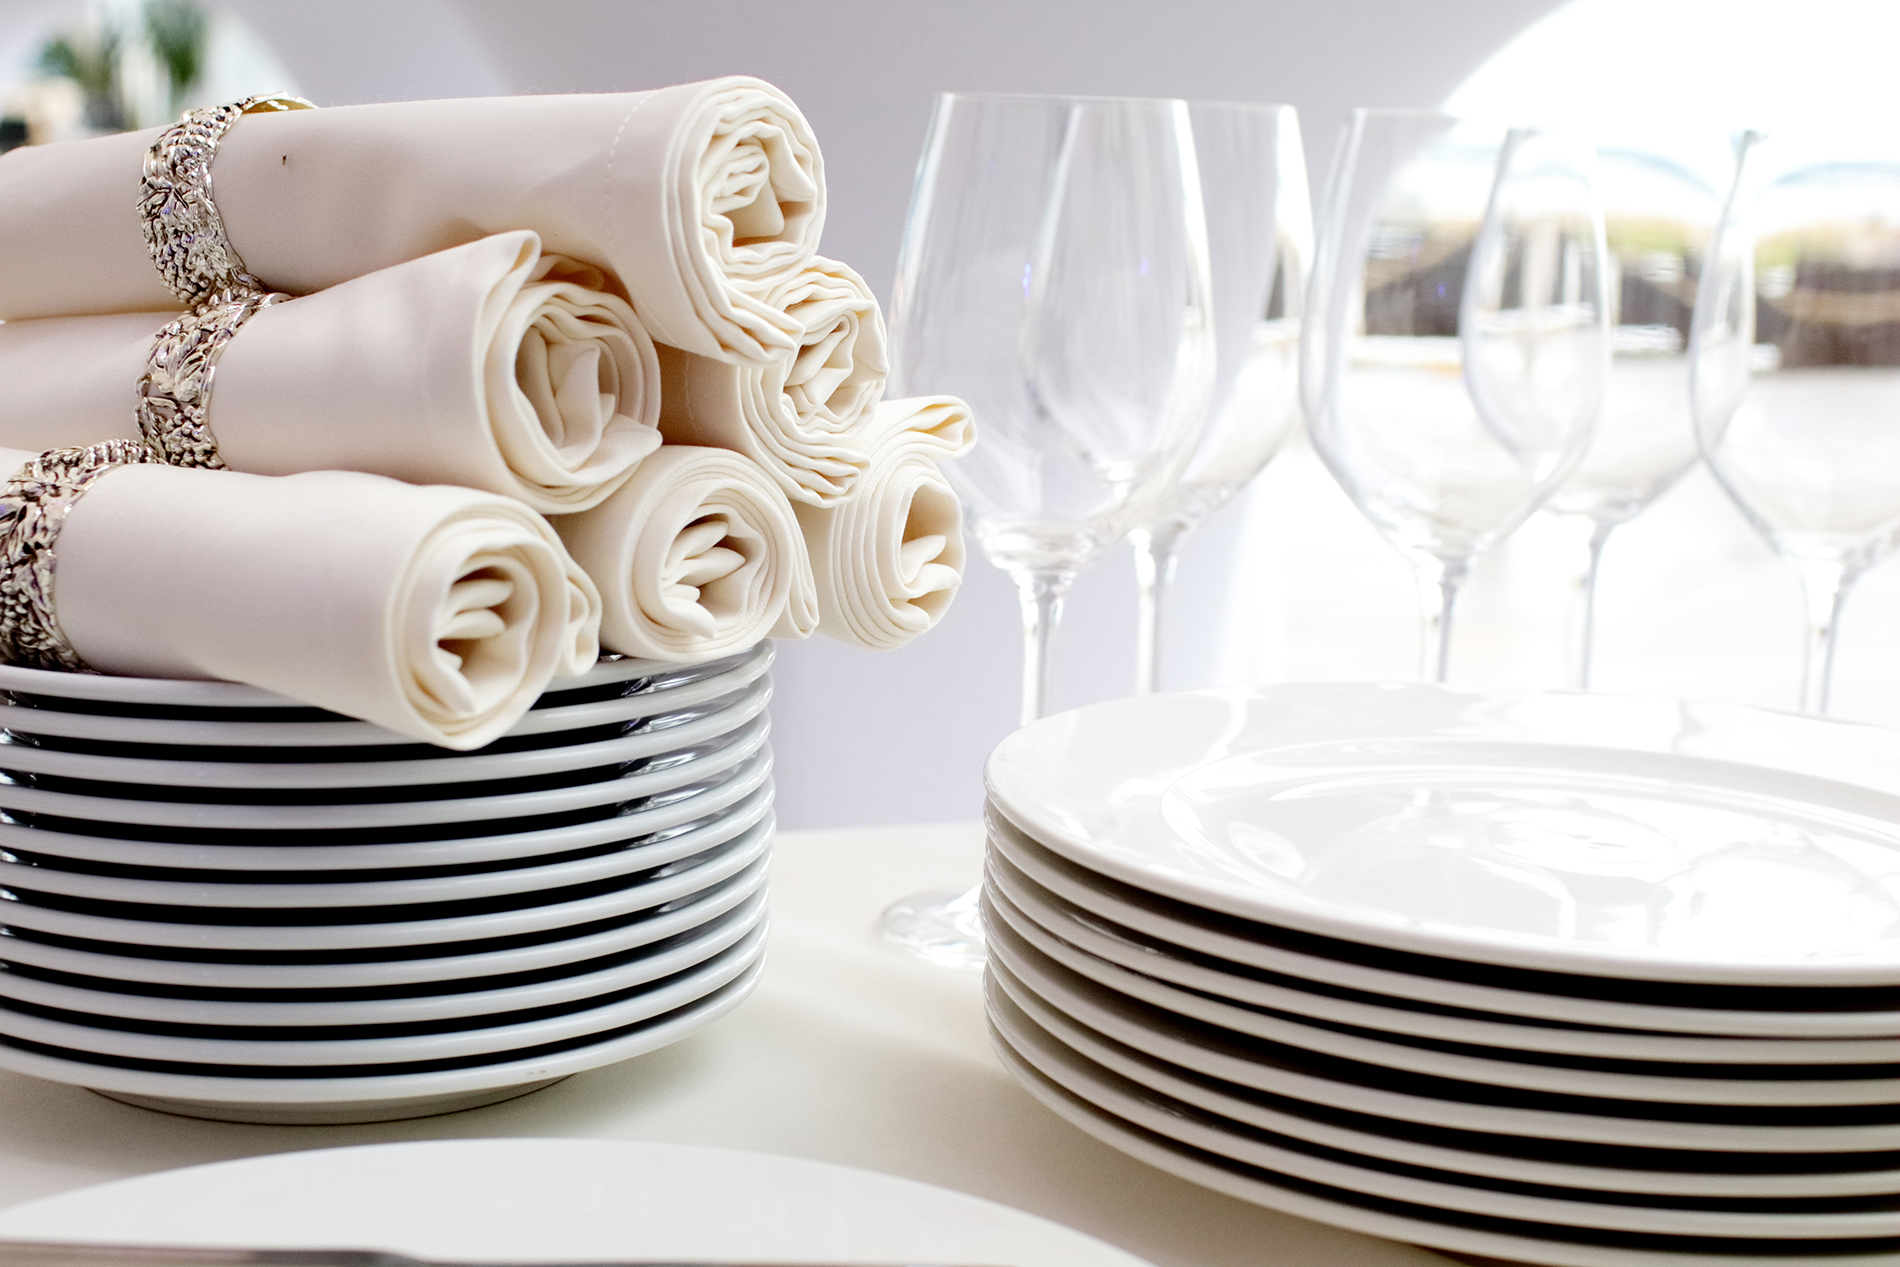 Goblets and neat stacks of plates 53466